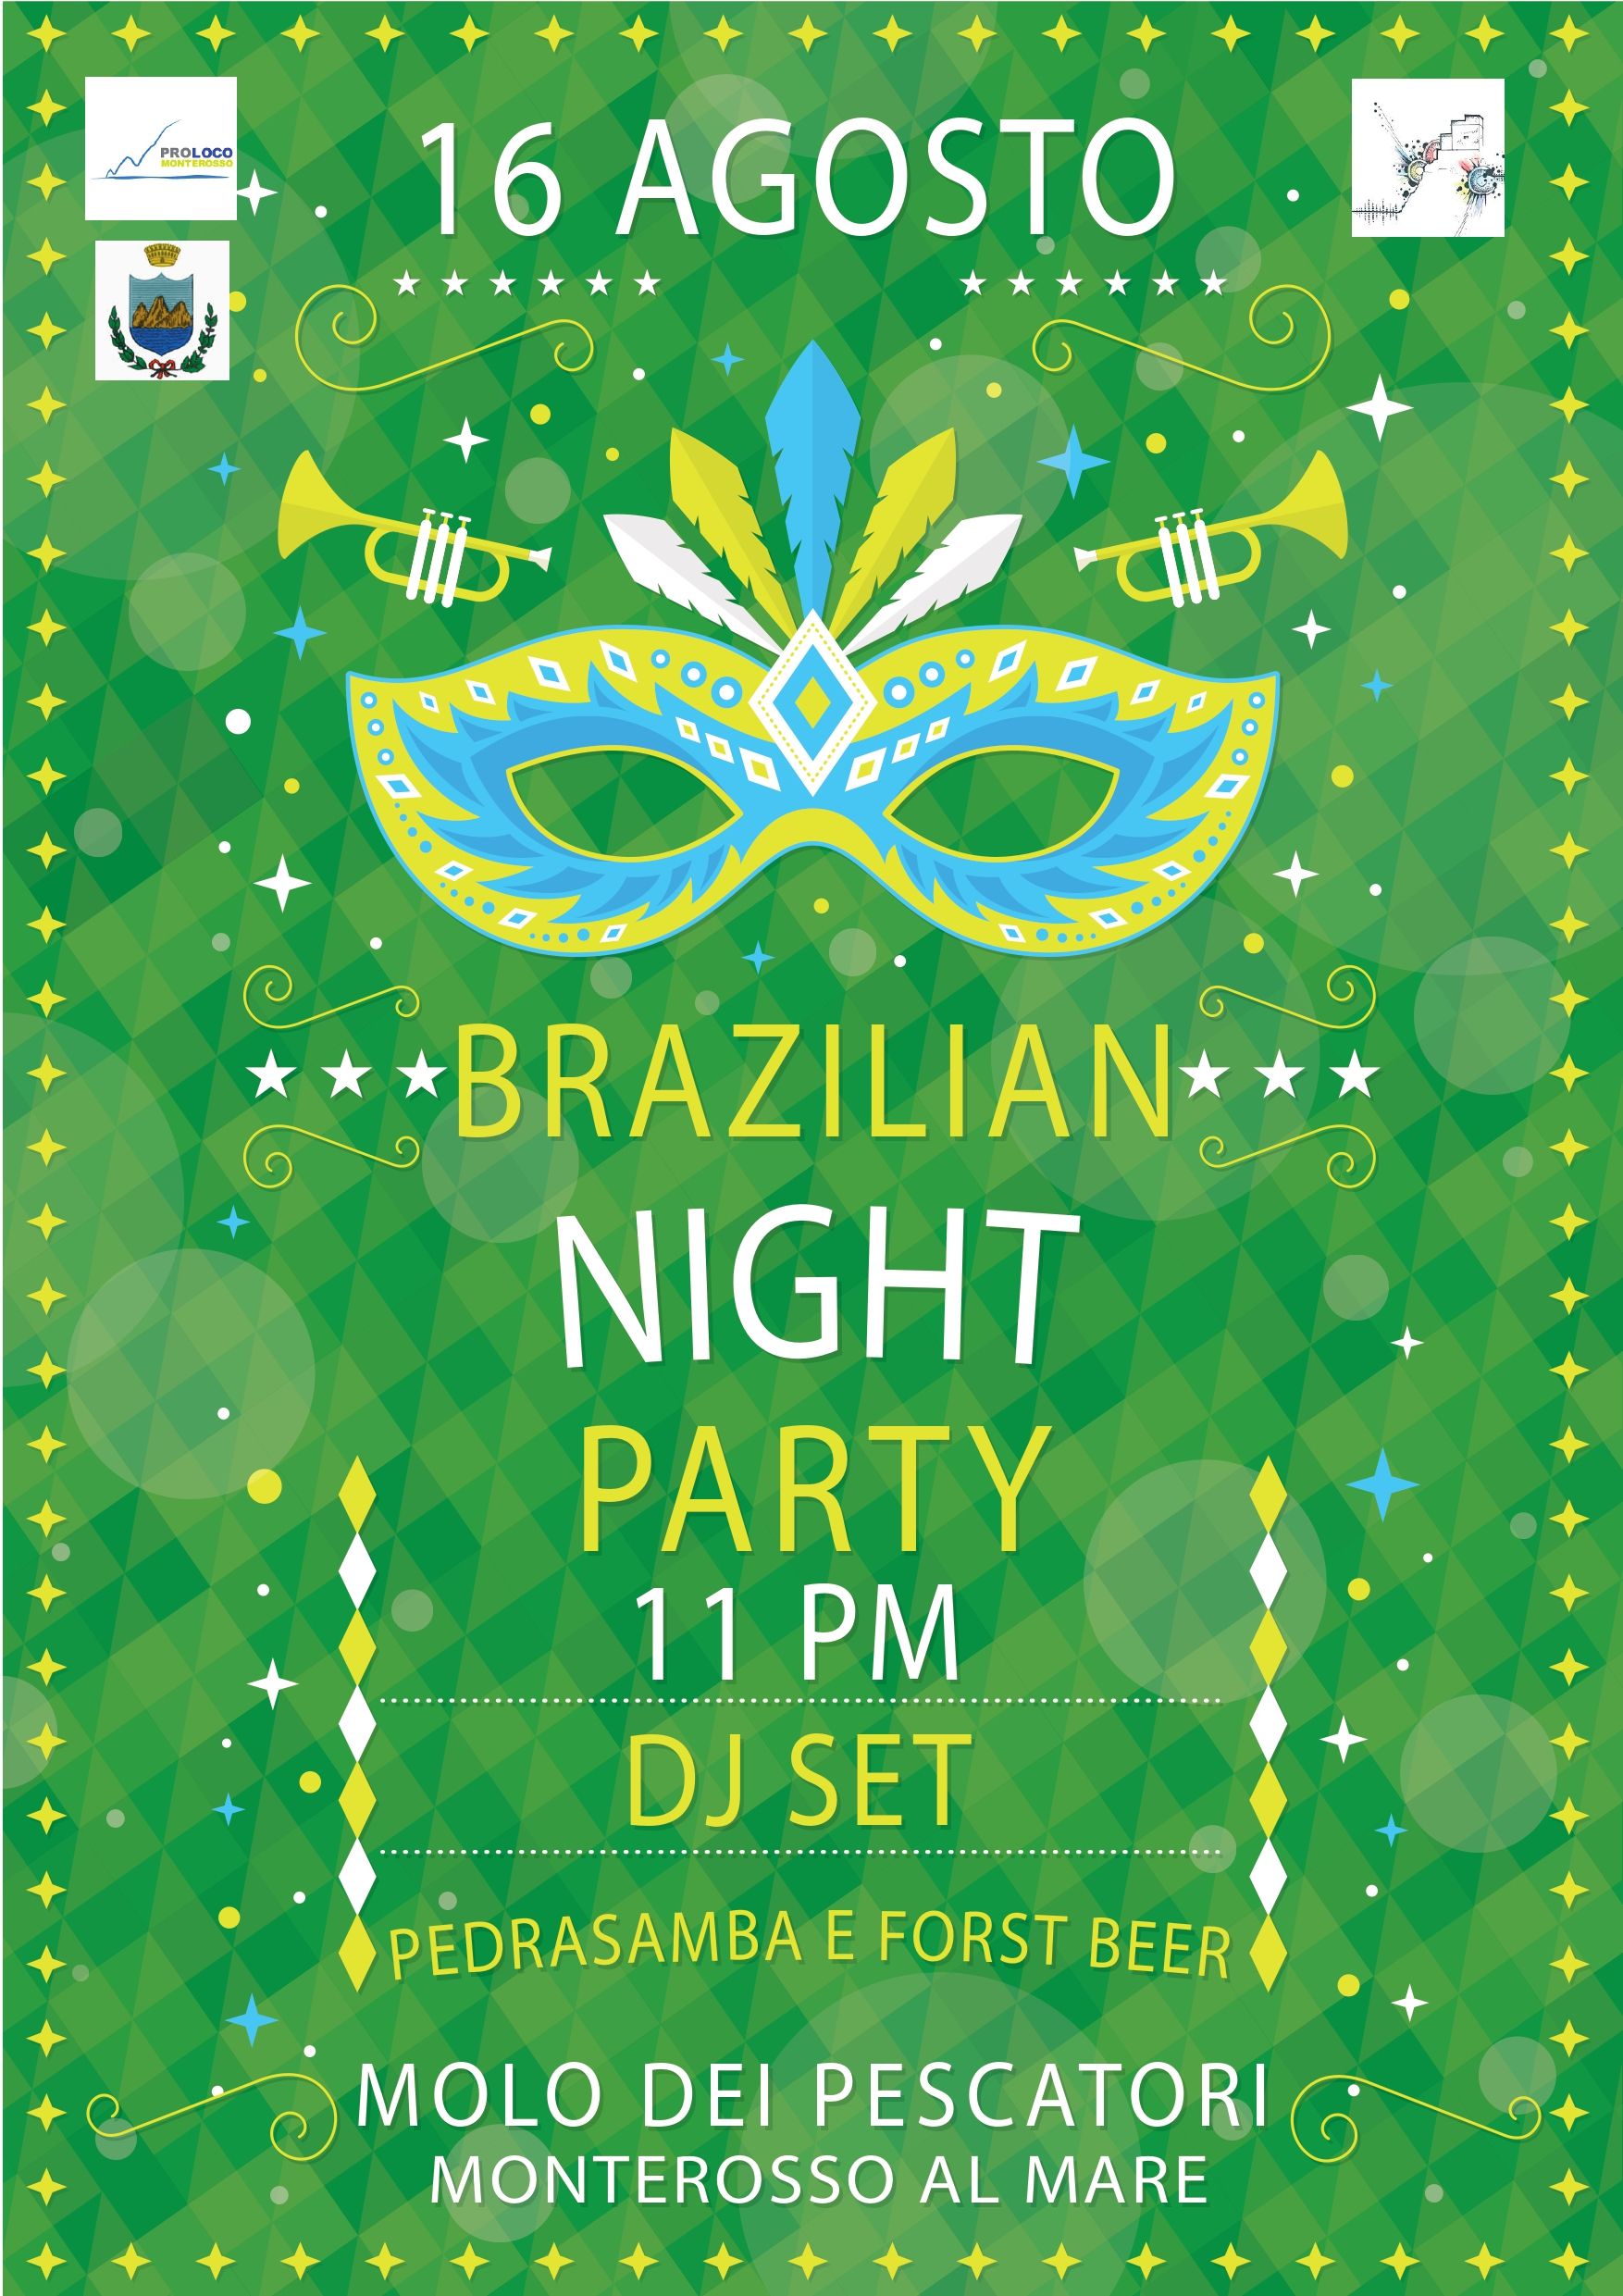 bRAZILIAN PARTY_pages-to-jpg-0001